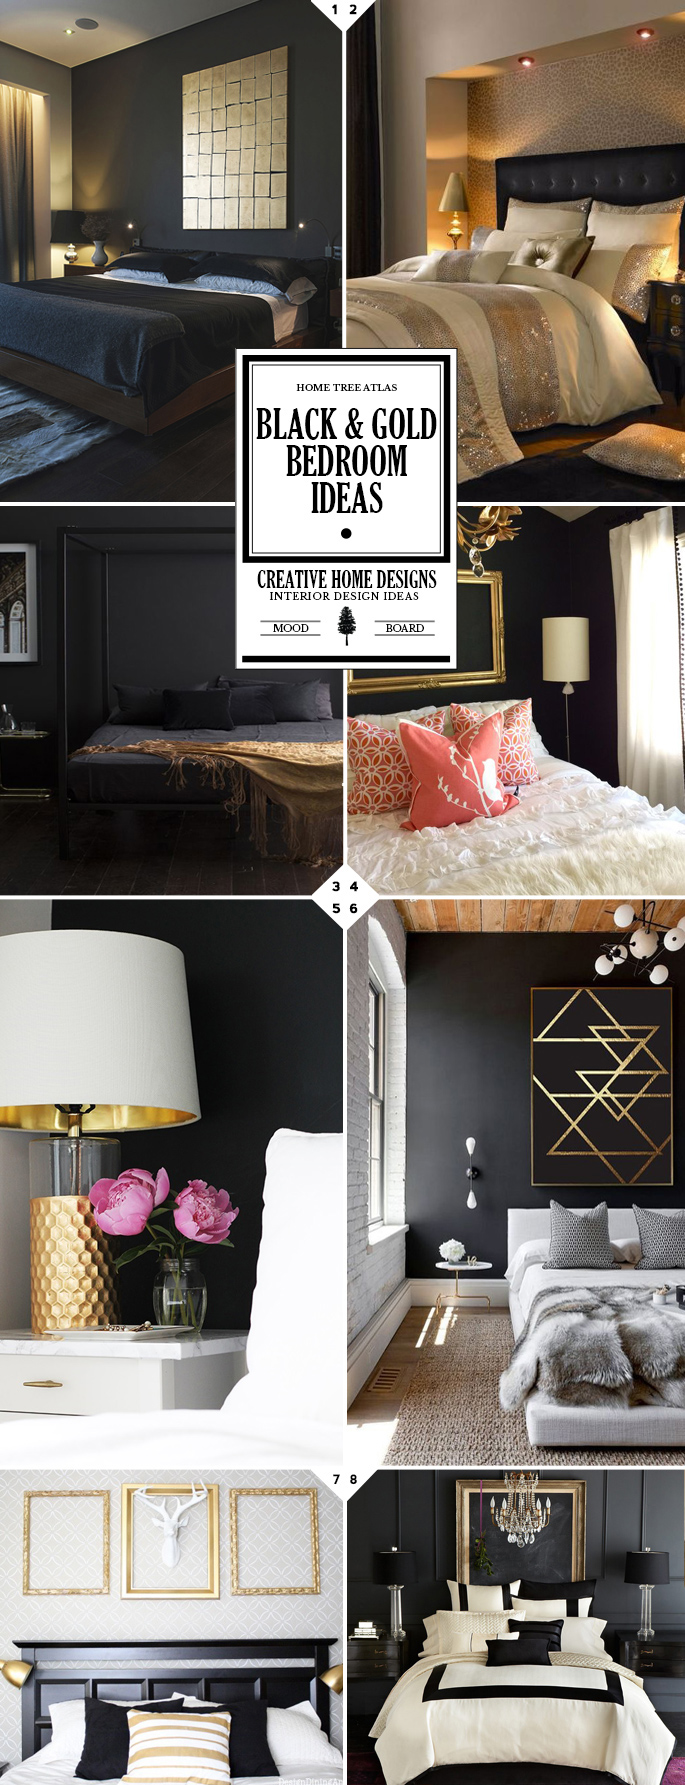 Style guide black and gold bedroom ideas interior design for Black and gold interior design